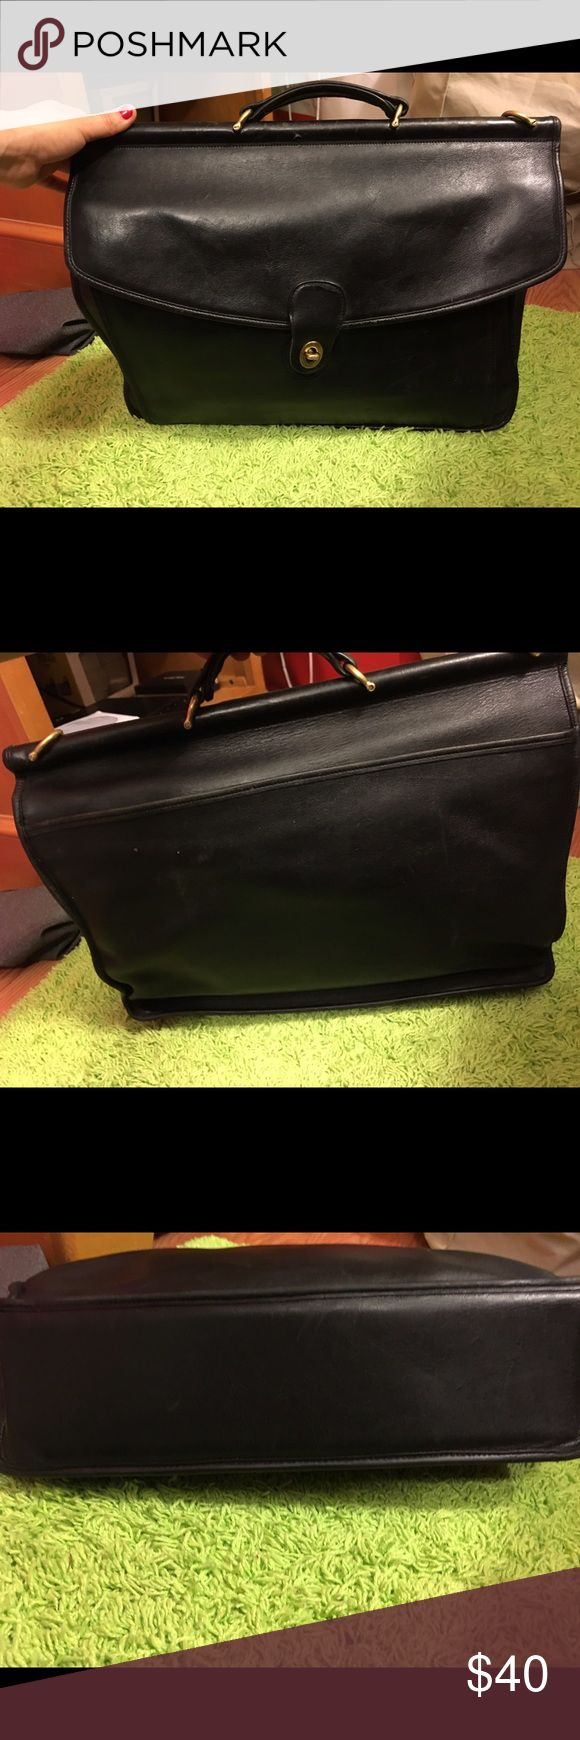 Black vintage coach briefcase. Black vintage coach briefcase. There is wear, tear and scratching. There is no strap. Measurements are: width is 16 inches, height is 13 inches and the side is 4 inches. Price is firm. Coach Bags